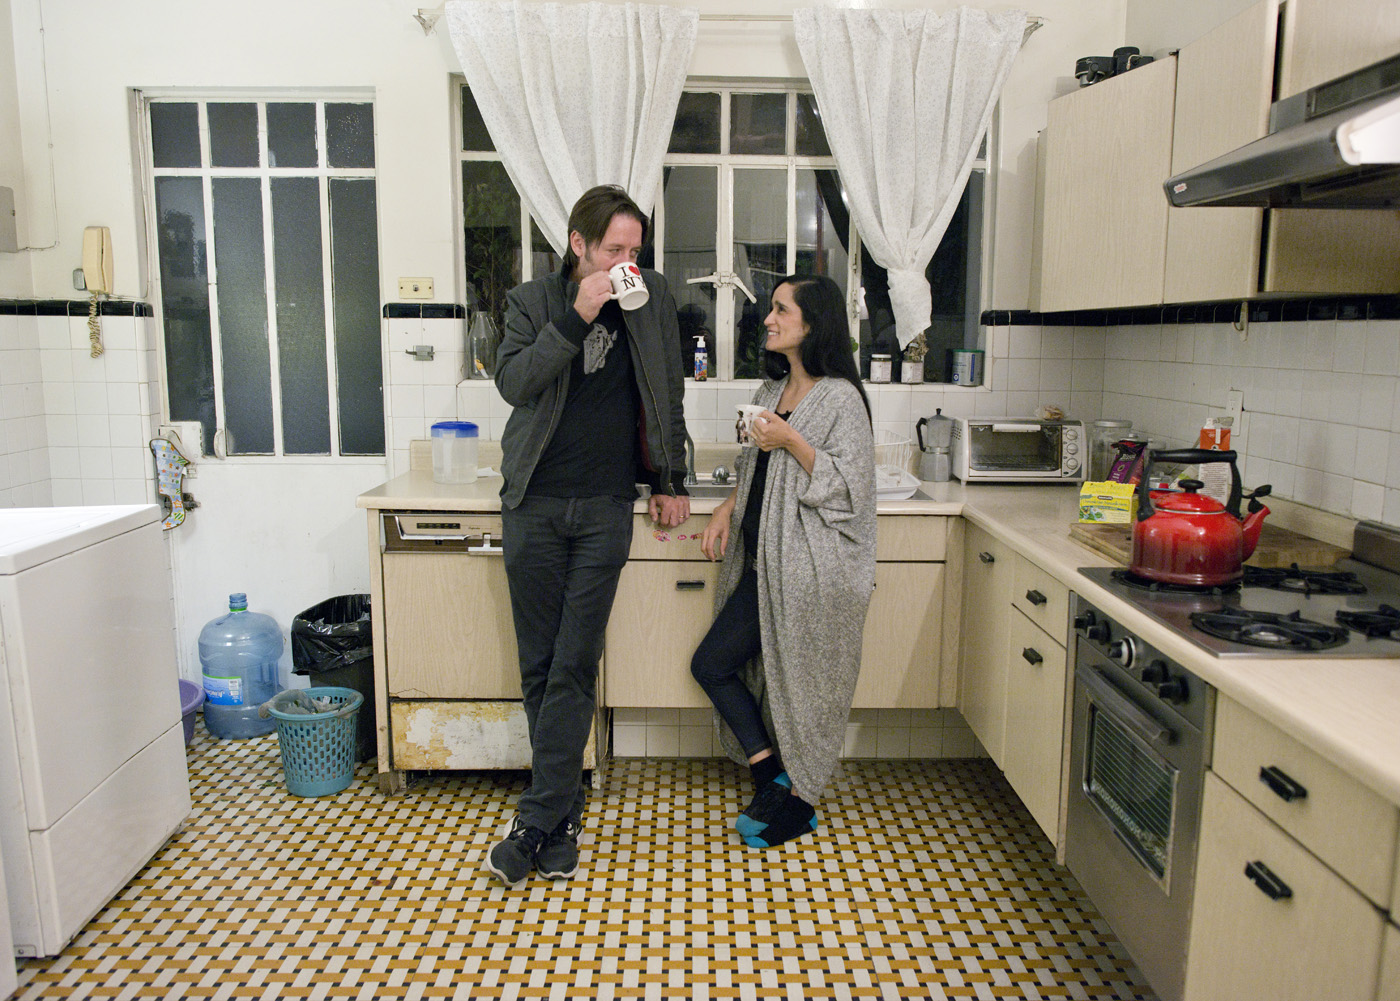 Photographer Yvonne Venegas and cinematographer Gregory Allen in their kitchen in la del Valle, Mexico City.